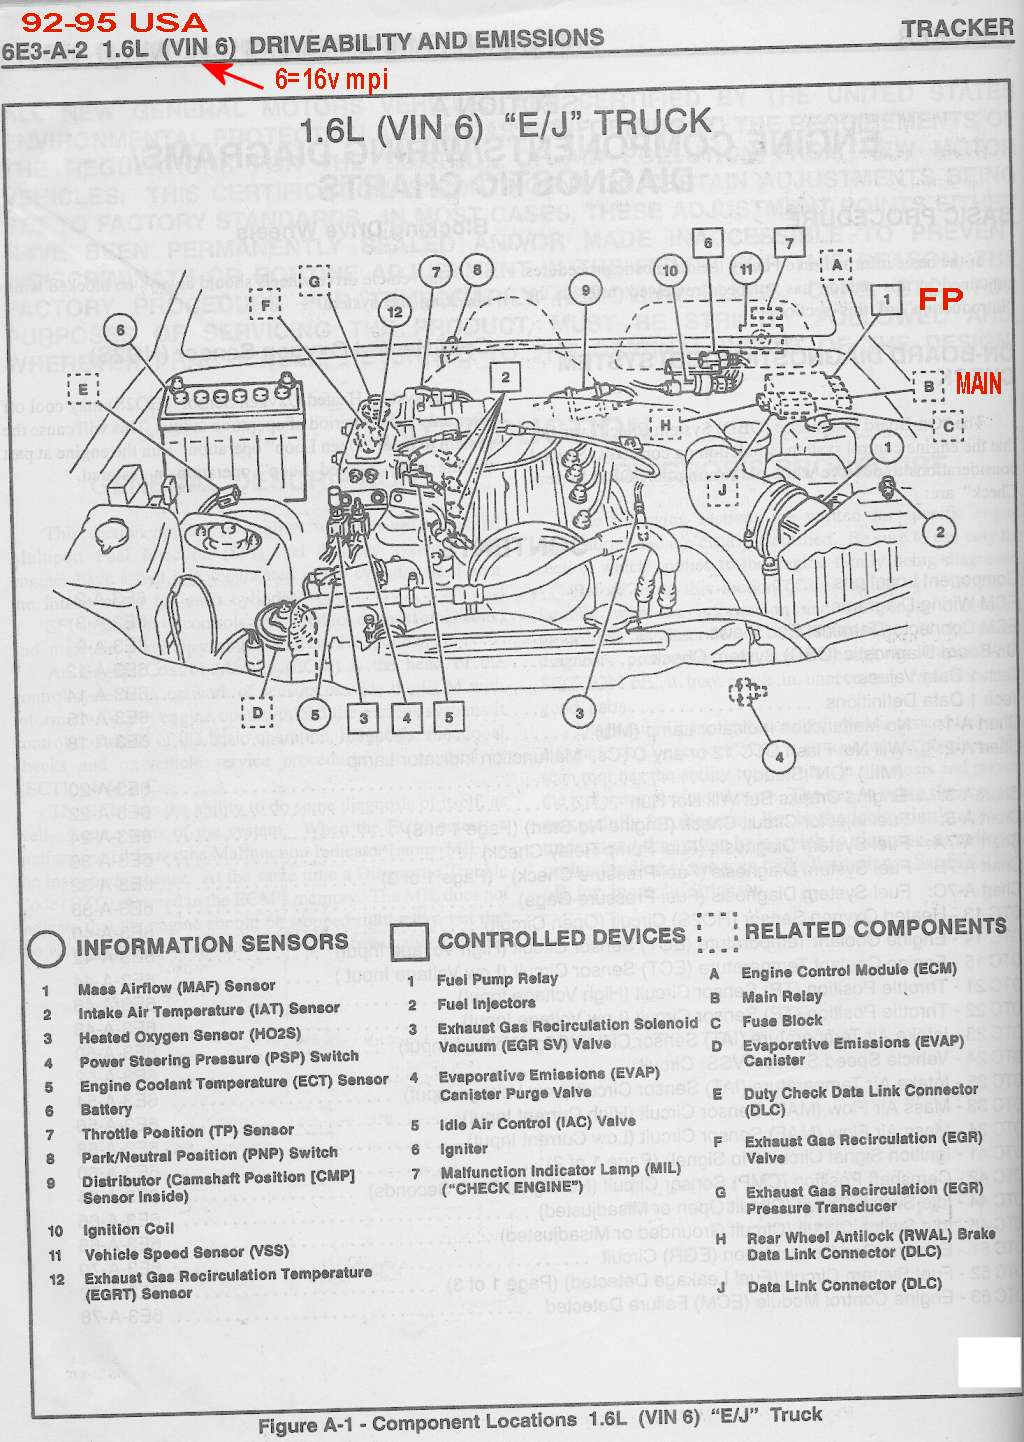 92 Geo Tracker Wiring Diagram : 29 Wiring Diagram Images